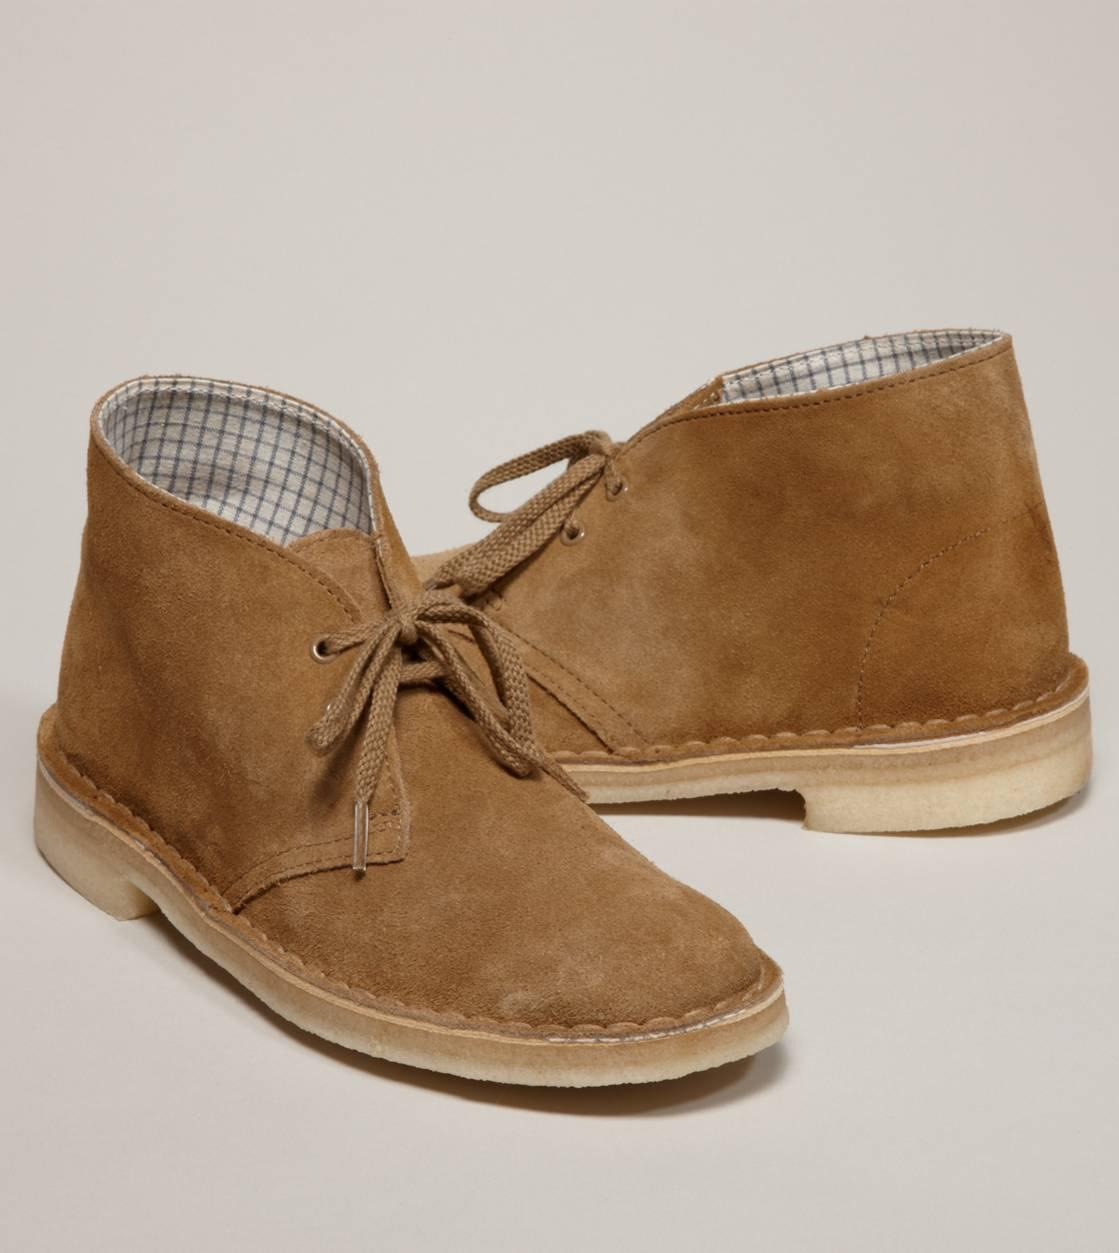 clarks originals desert boot american from american eagle. Black Bedroom Furniture Sets. Home Design Ideas